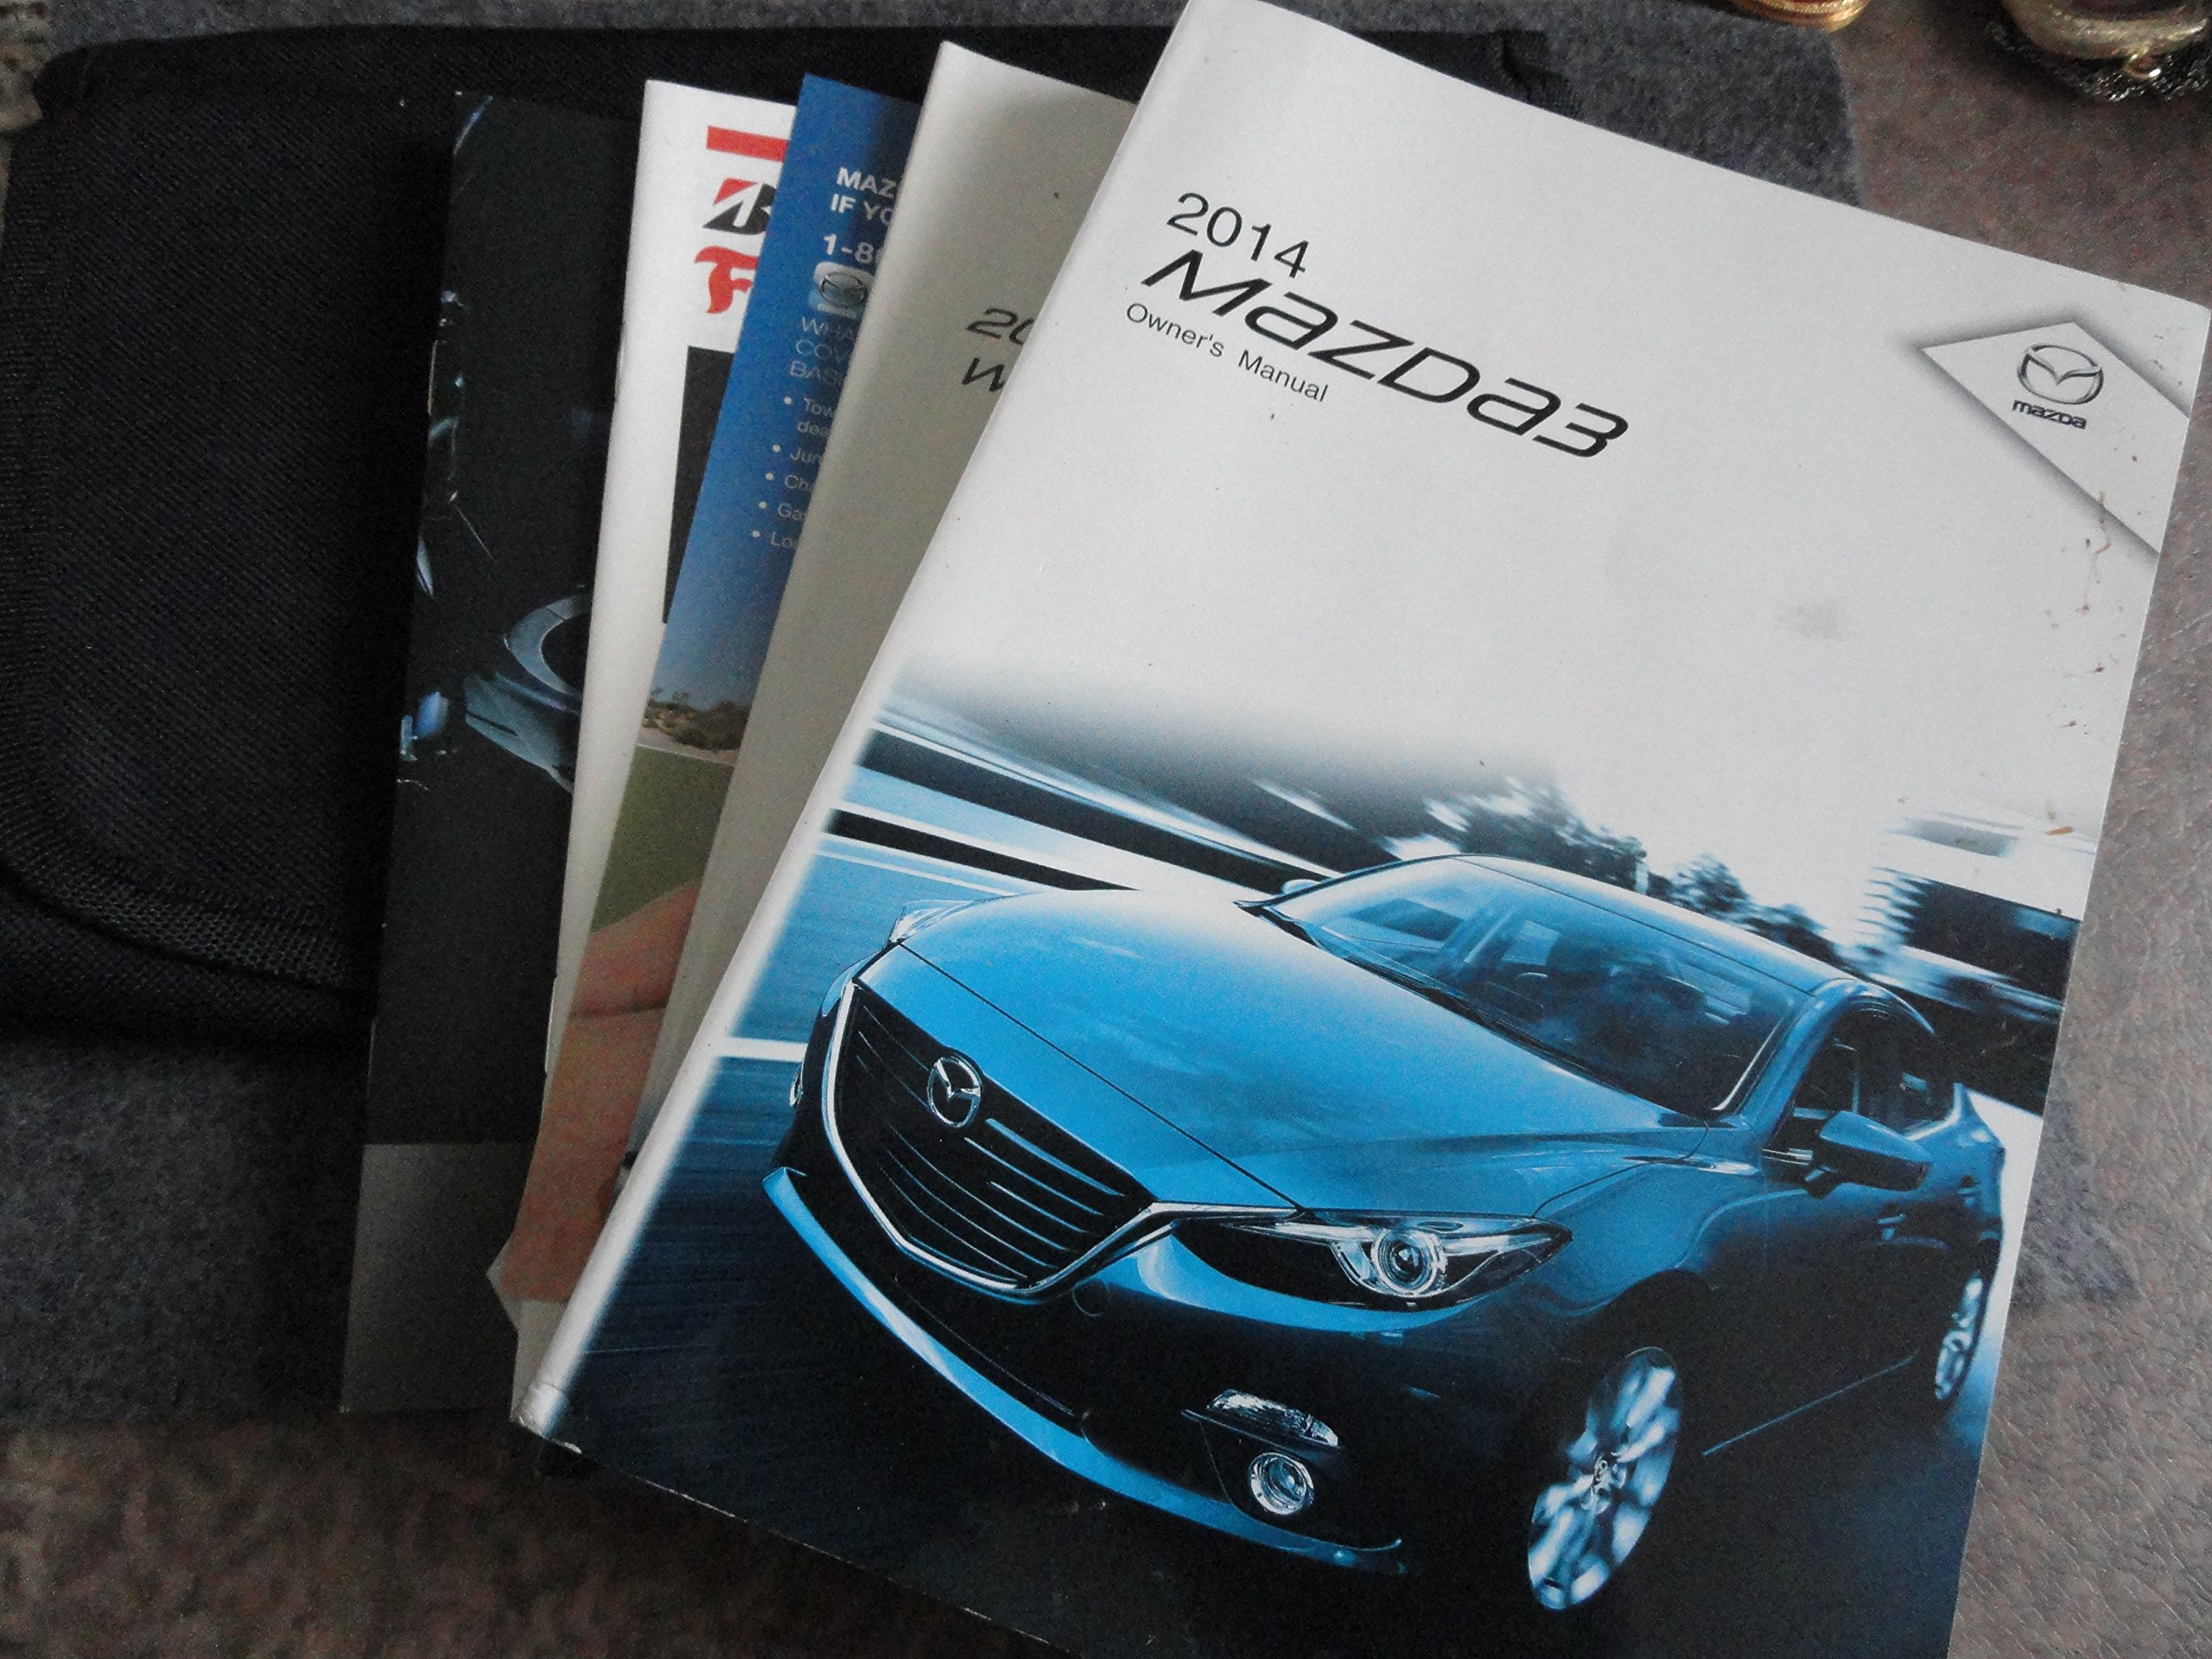 2012 mazda mazdaspeed3 hatchback owners manual provided by naples maz….